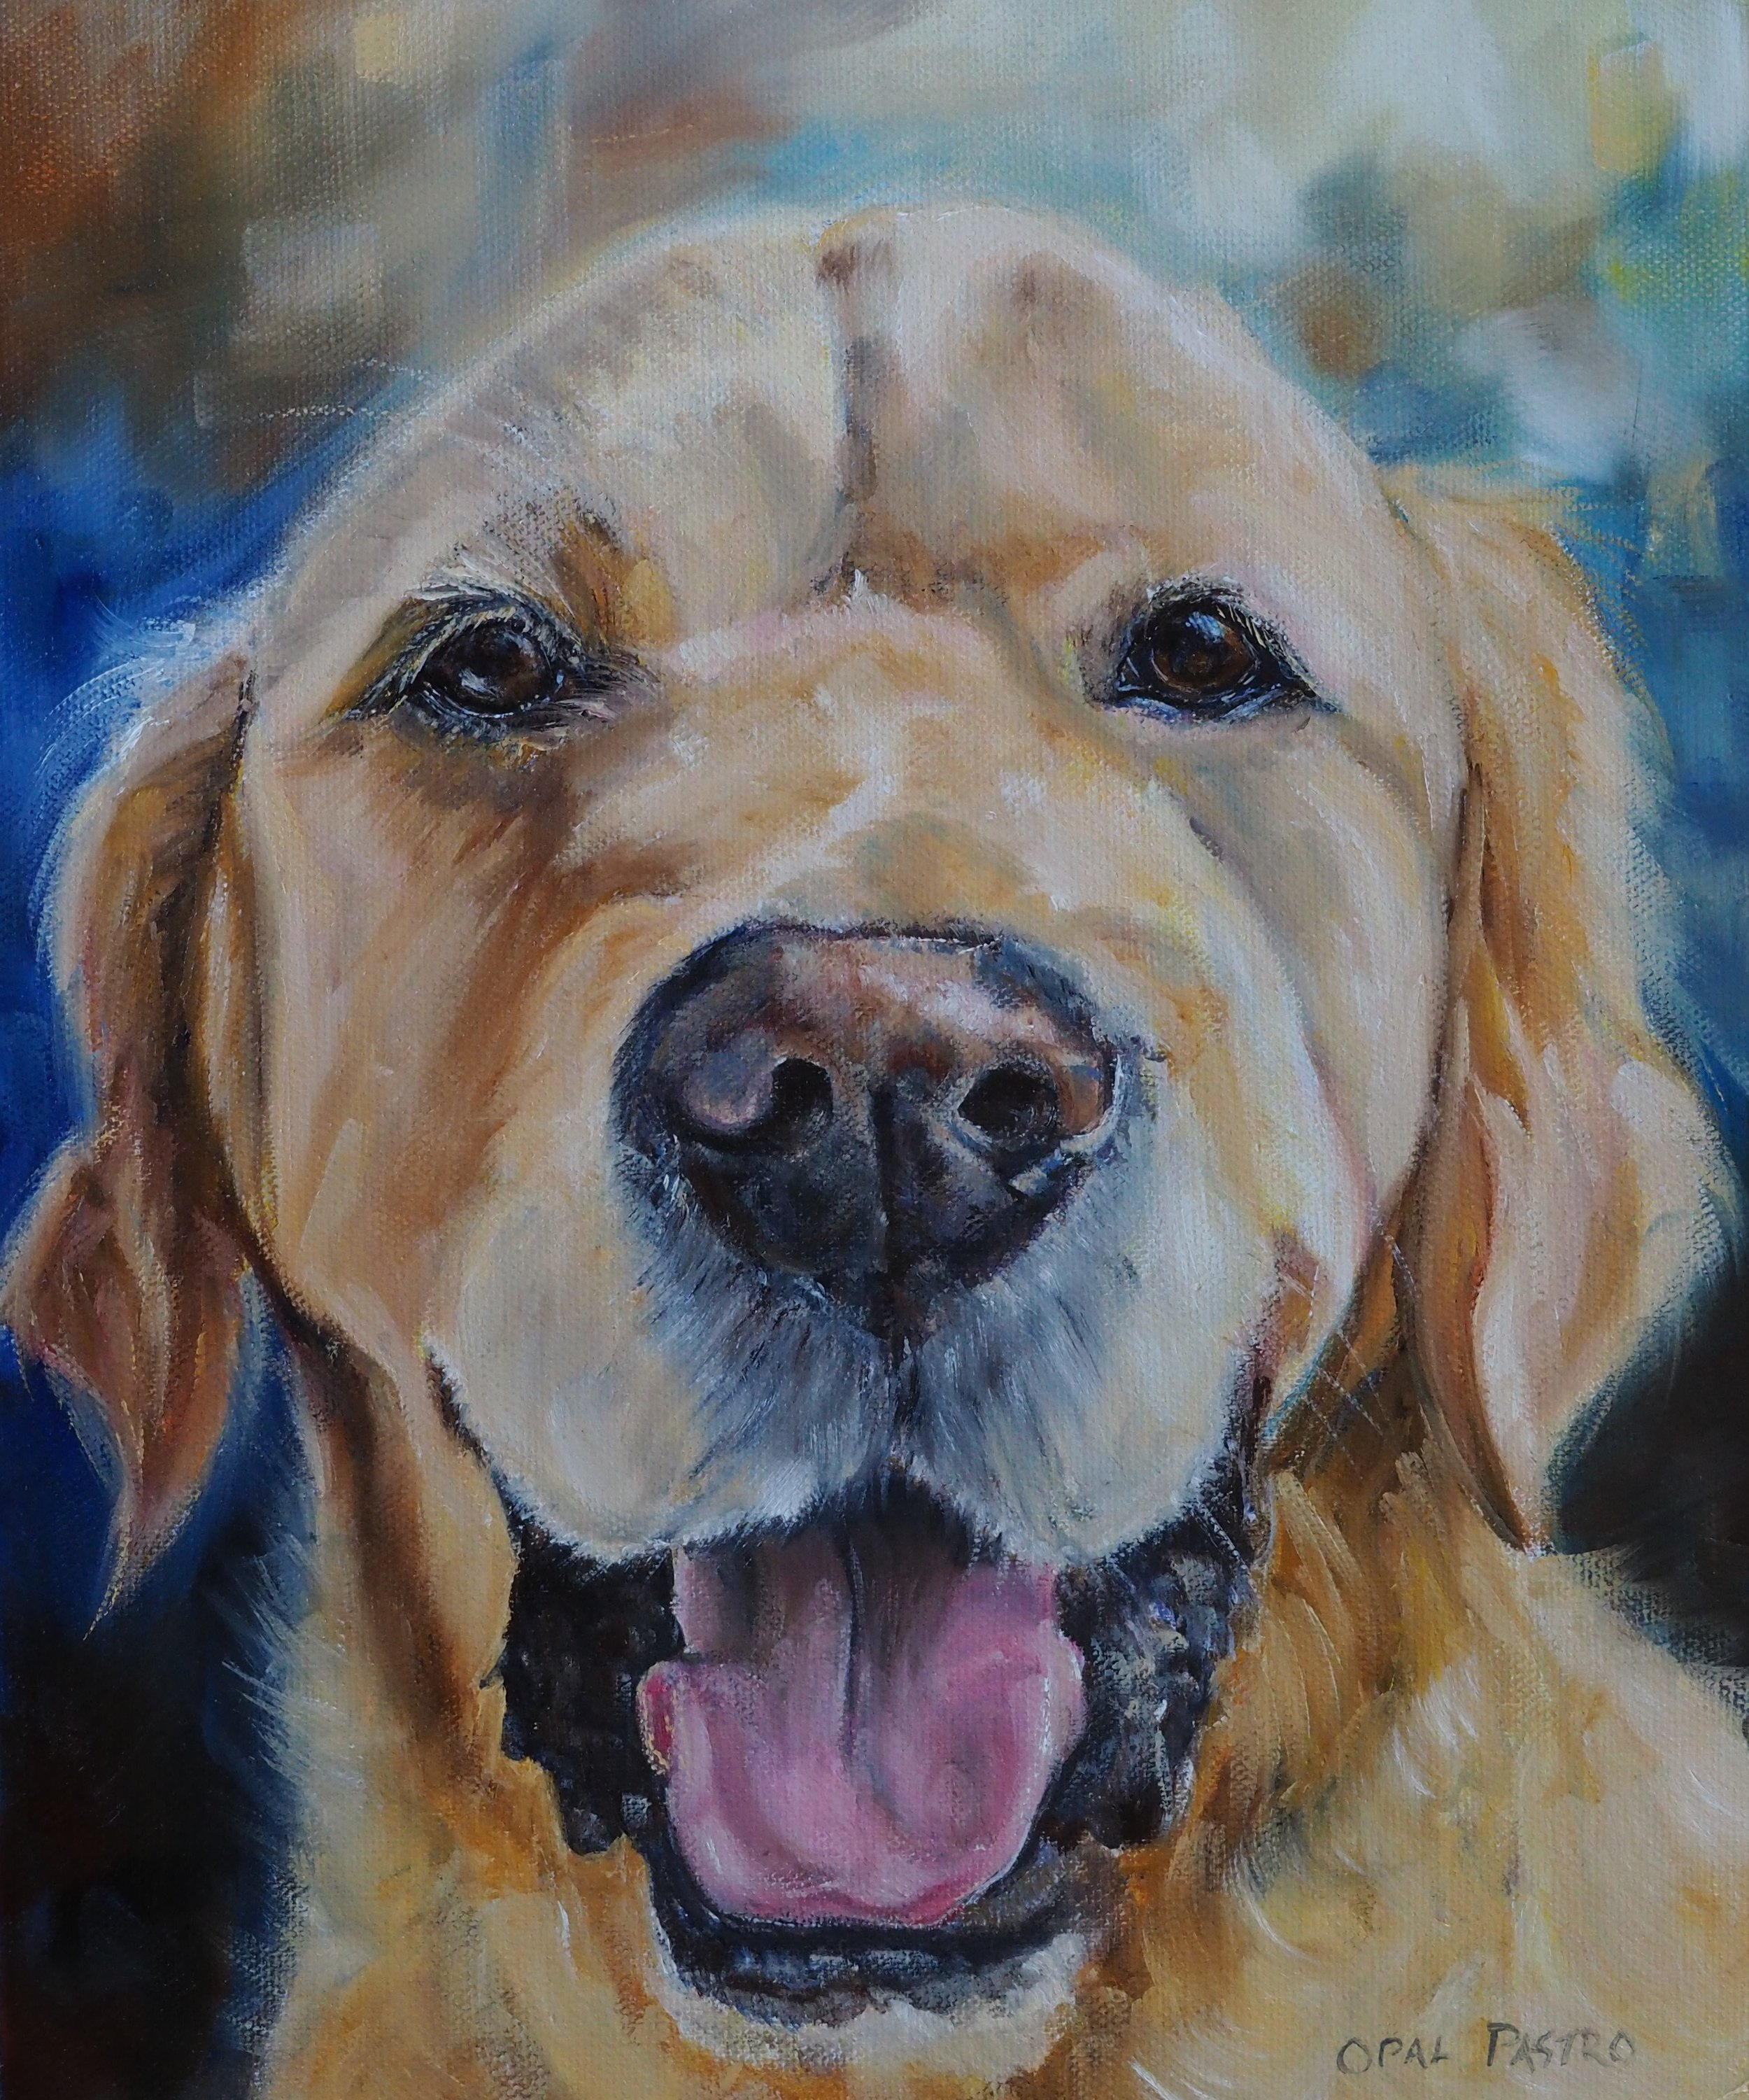 DOG PAINTING OF SMILING GOLDEN RETRIEVER BY OPAL PASTRO ART